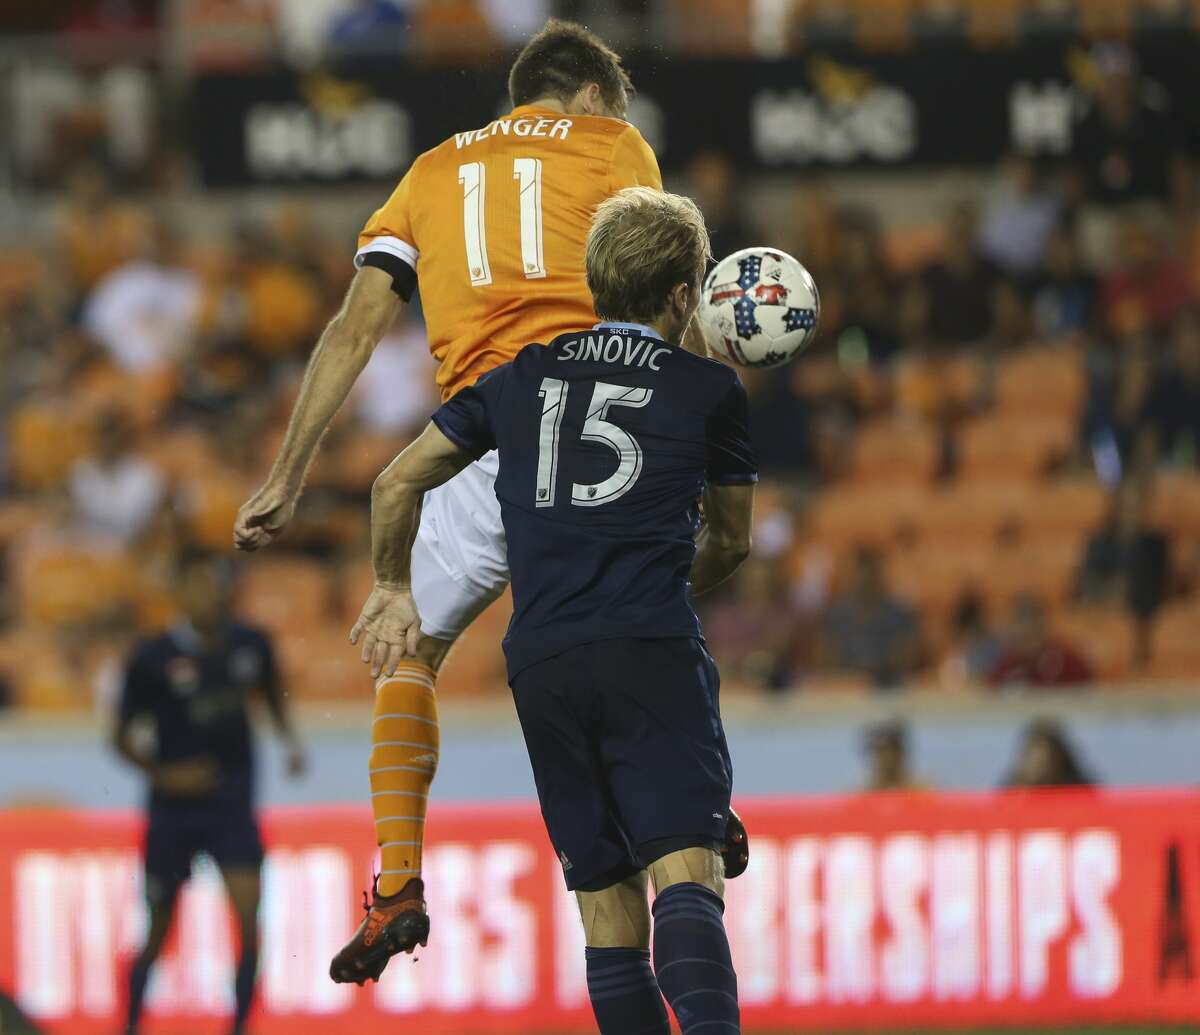 Houston Dynamo midfielder Andrew Wenger (11) attempts to score with a header during the second half of the MLS game at BBVA Compass Stadium Wednesday, Oct. 11, 2017, in Houston. Houston Dynamo defeated Sporting Kansas City 2-1. ( Yi-Chin Lee / Houston Chronicle )